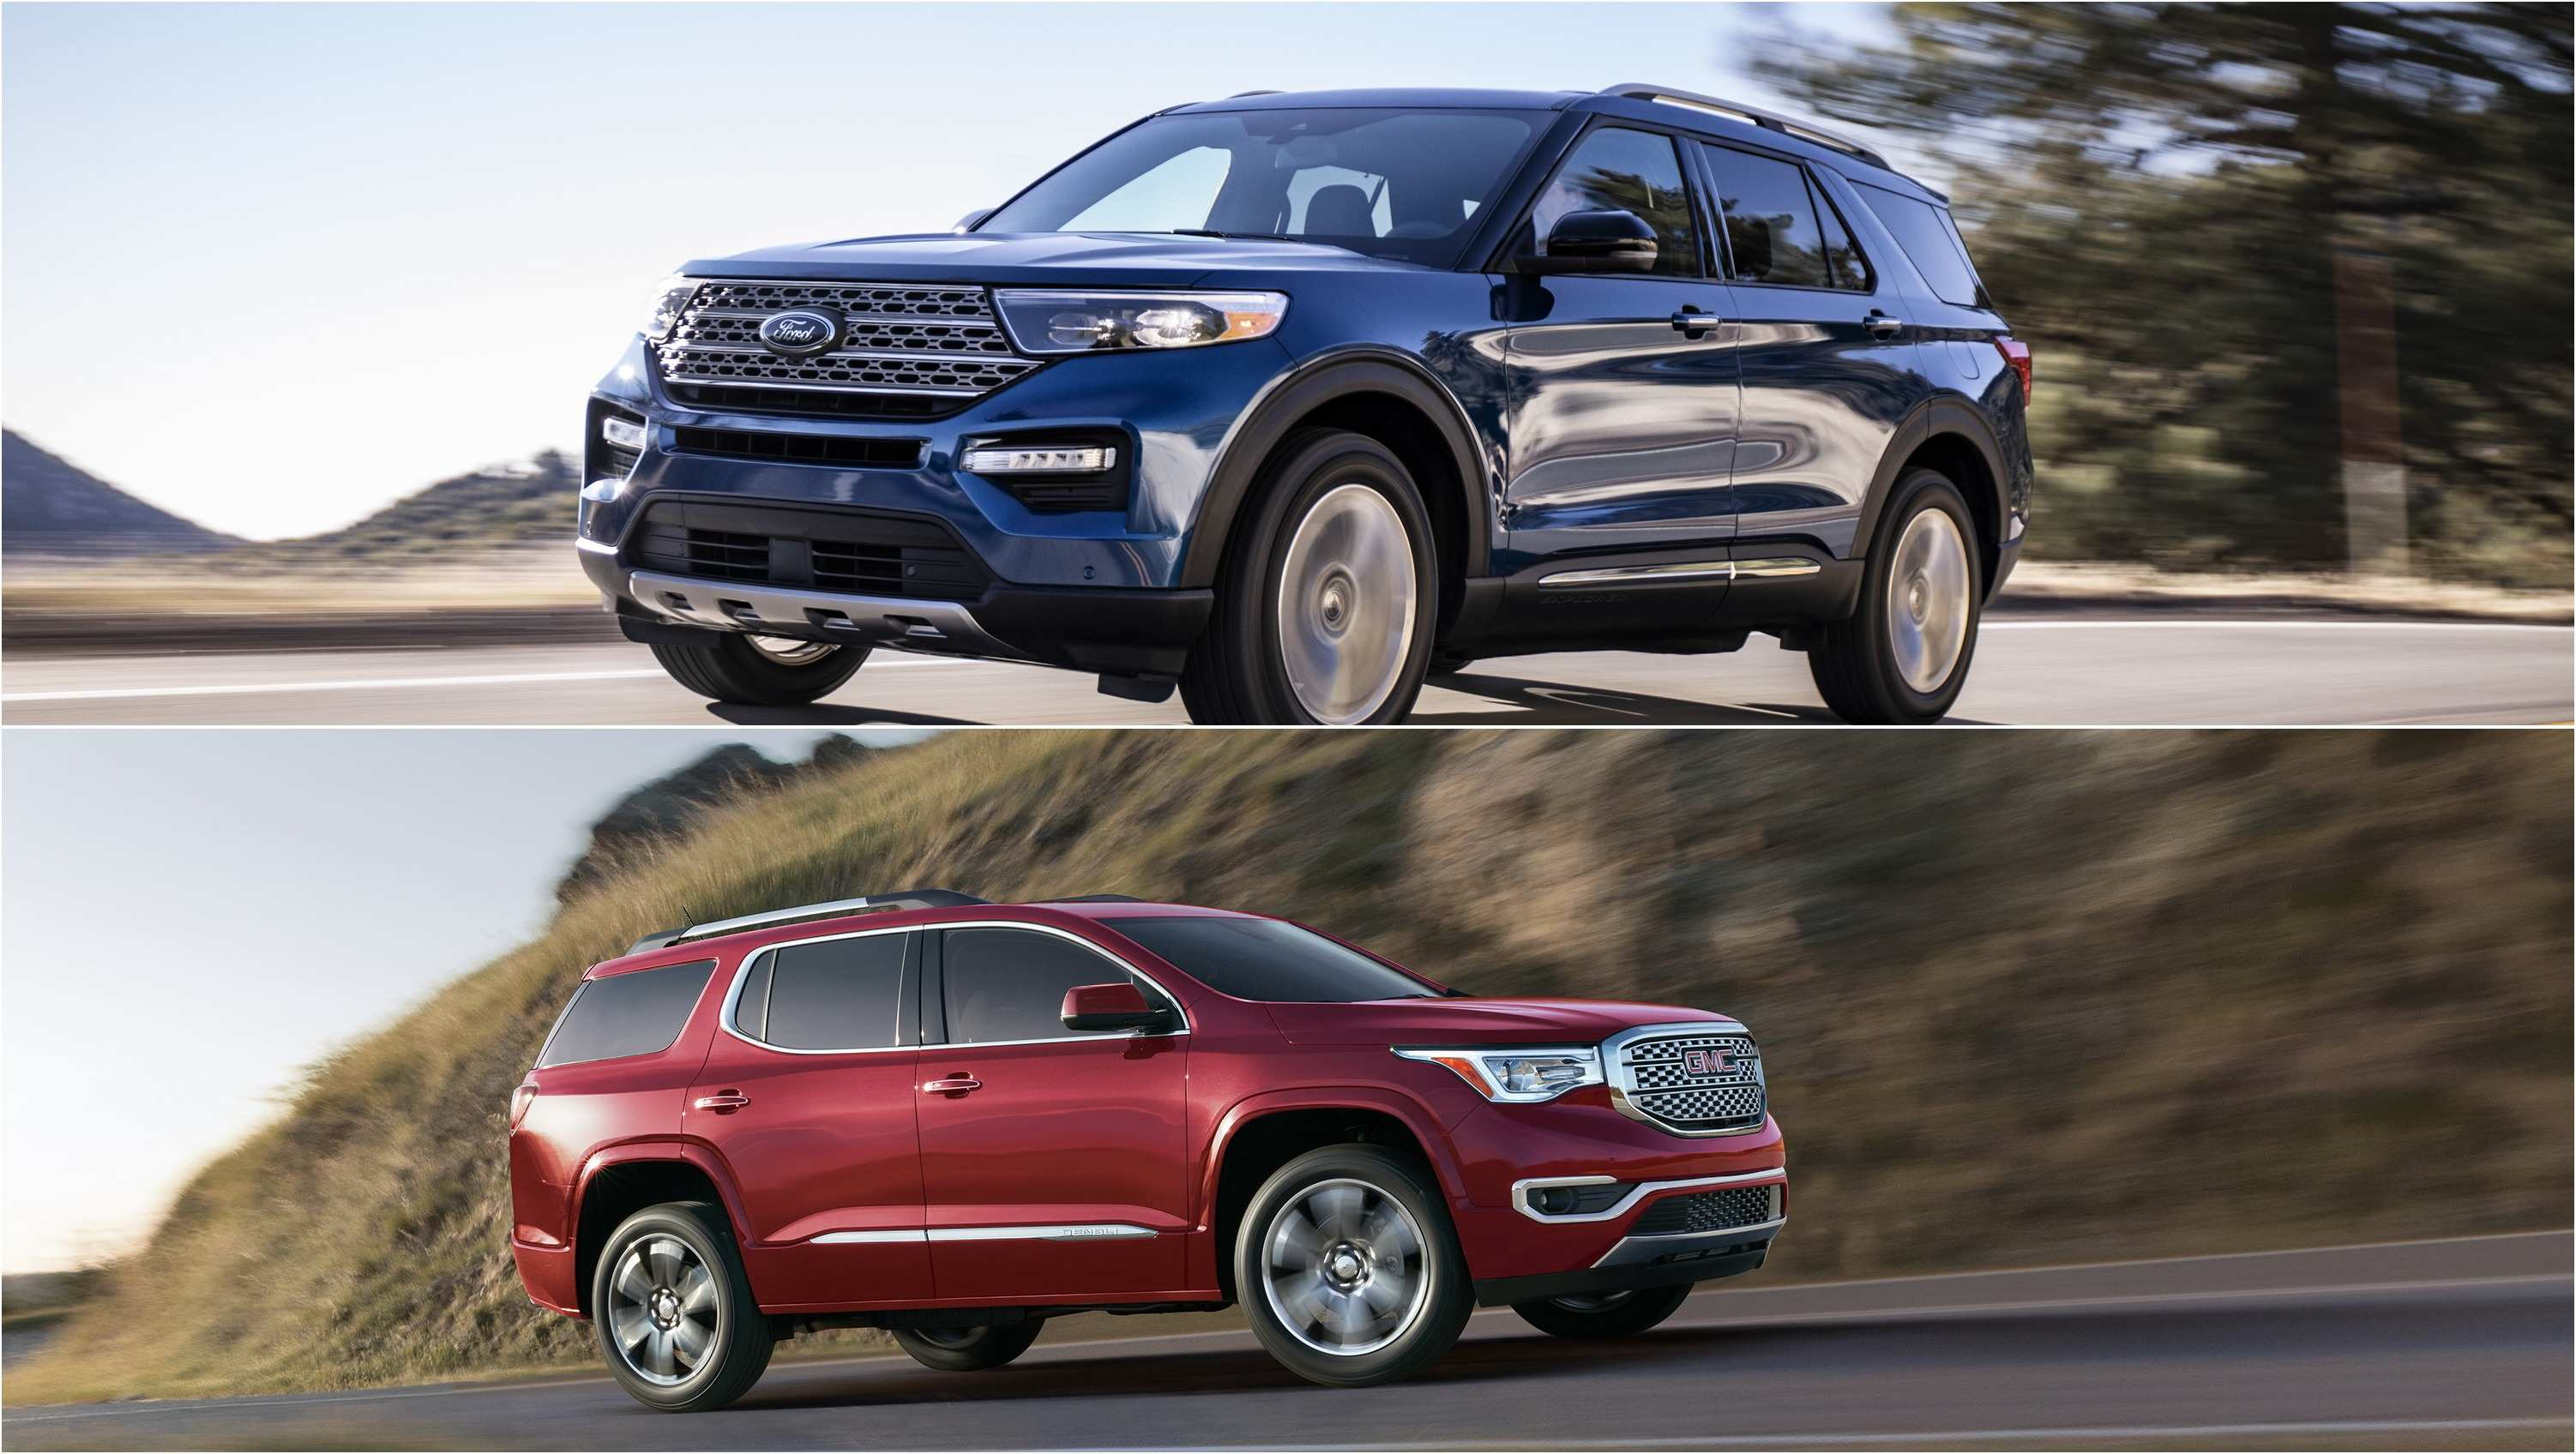 21 The Best Gmc Acadia 2020 Vs 2019 Pricing